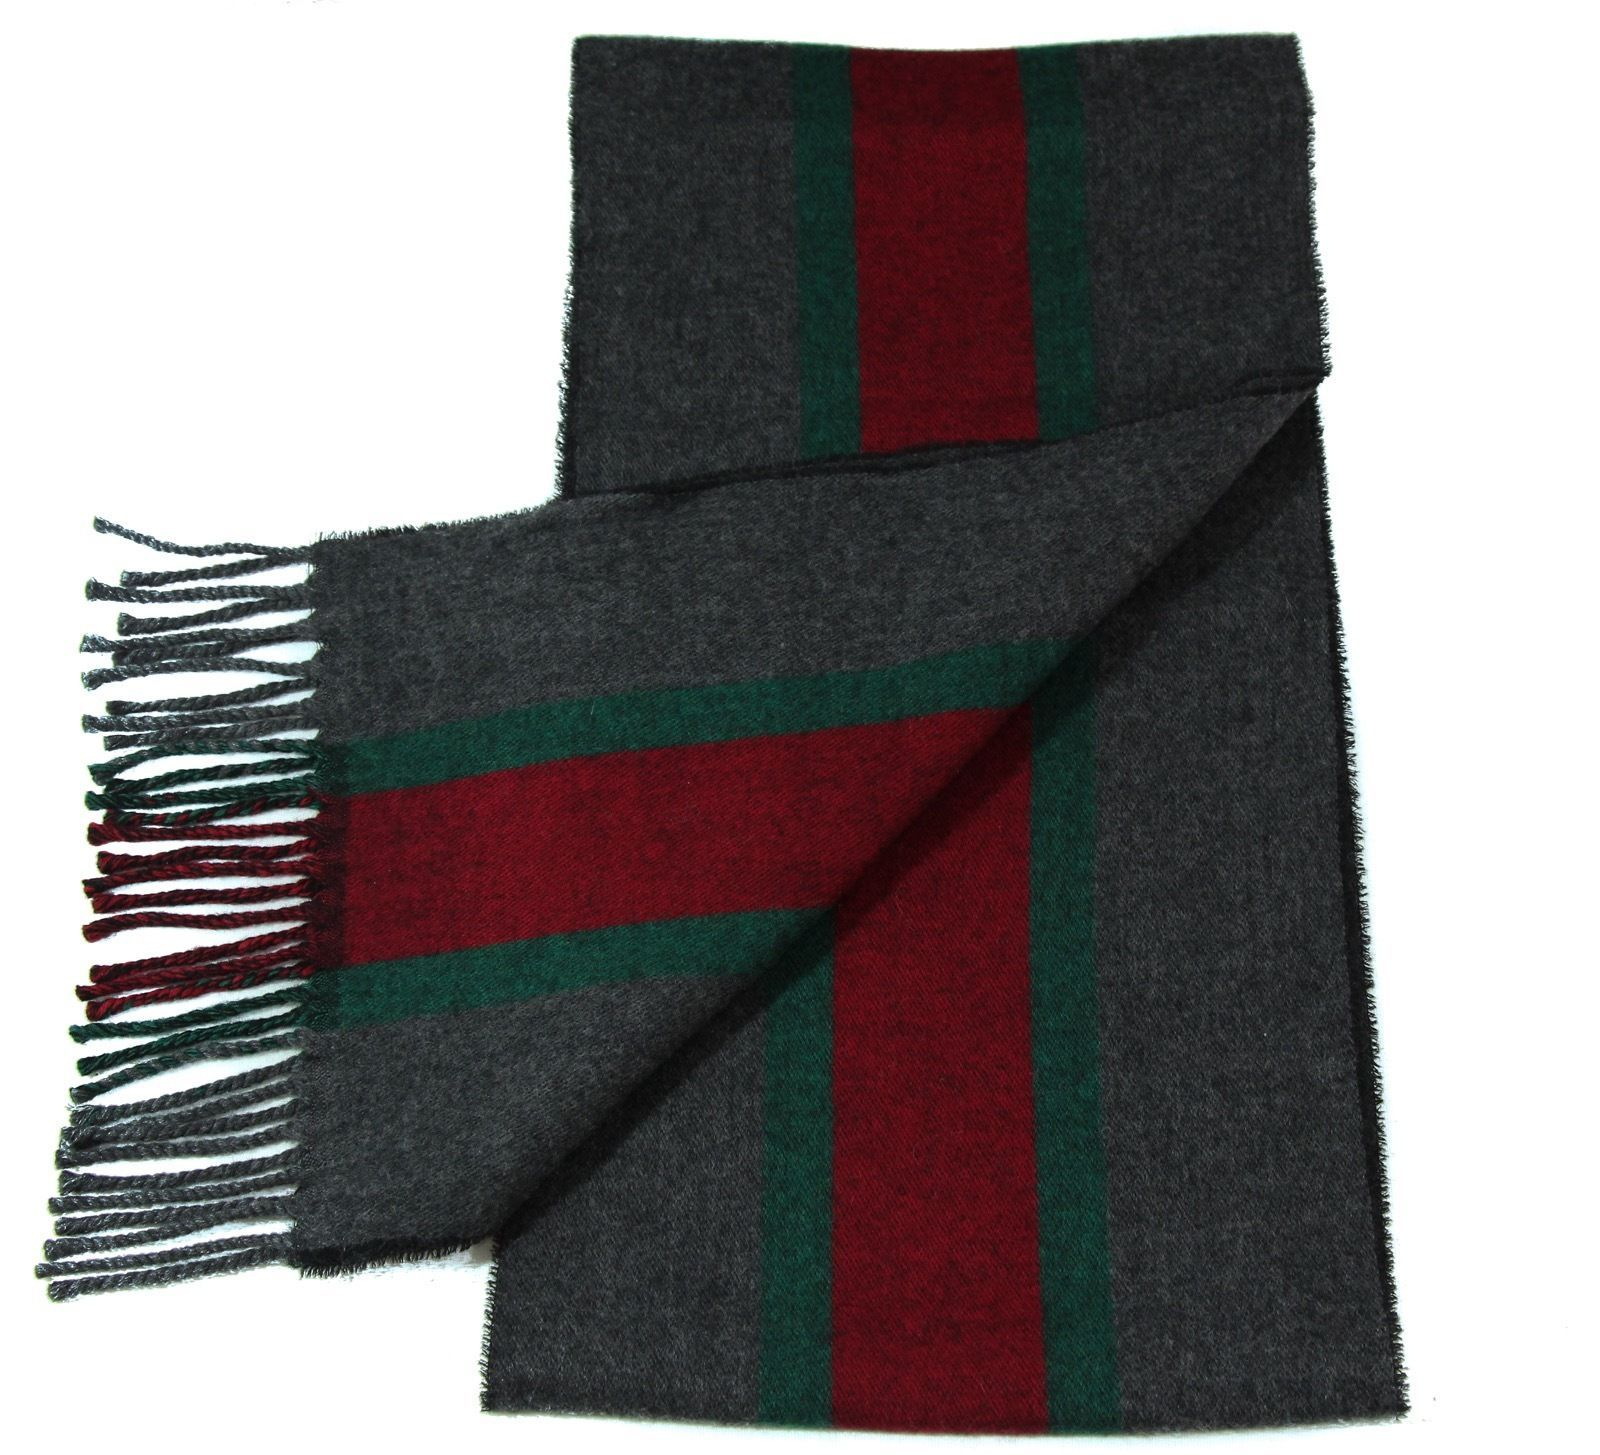 NWT Gucci 319956 Unisex Green, Red, Green Webstripe Wool Scarf, Multicolor